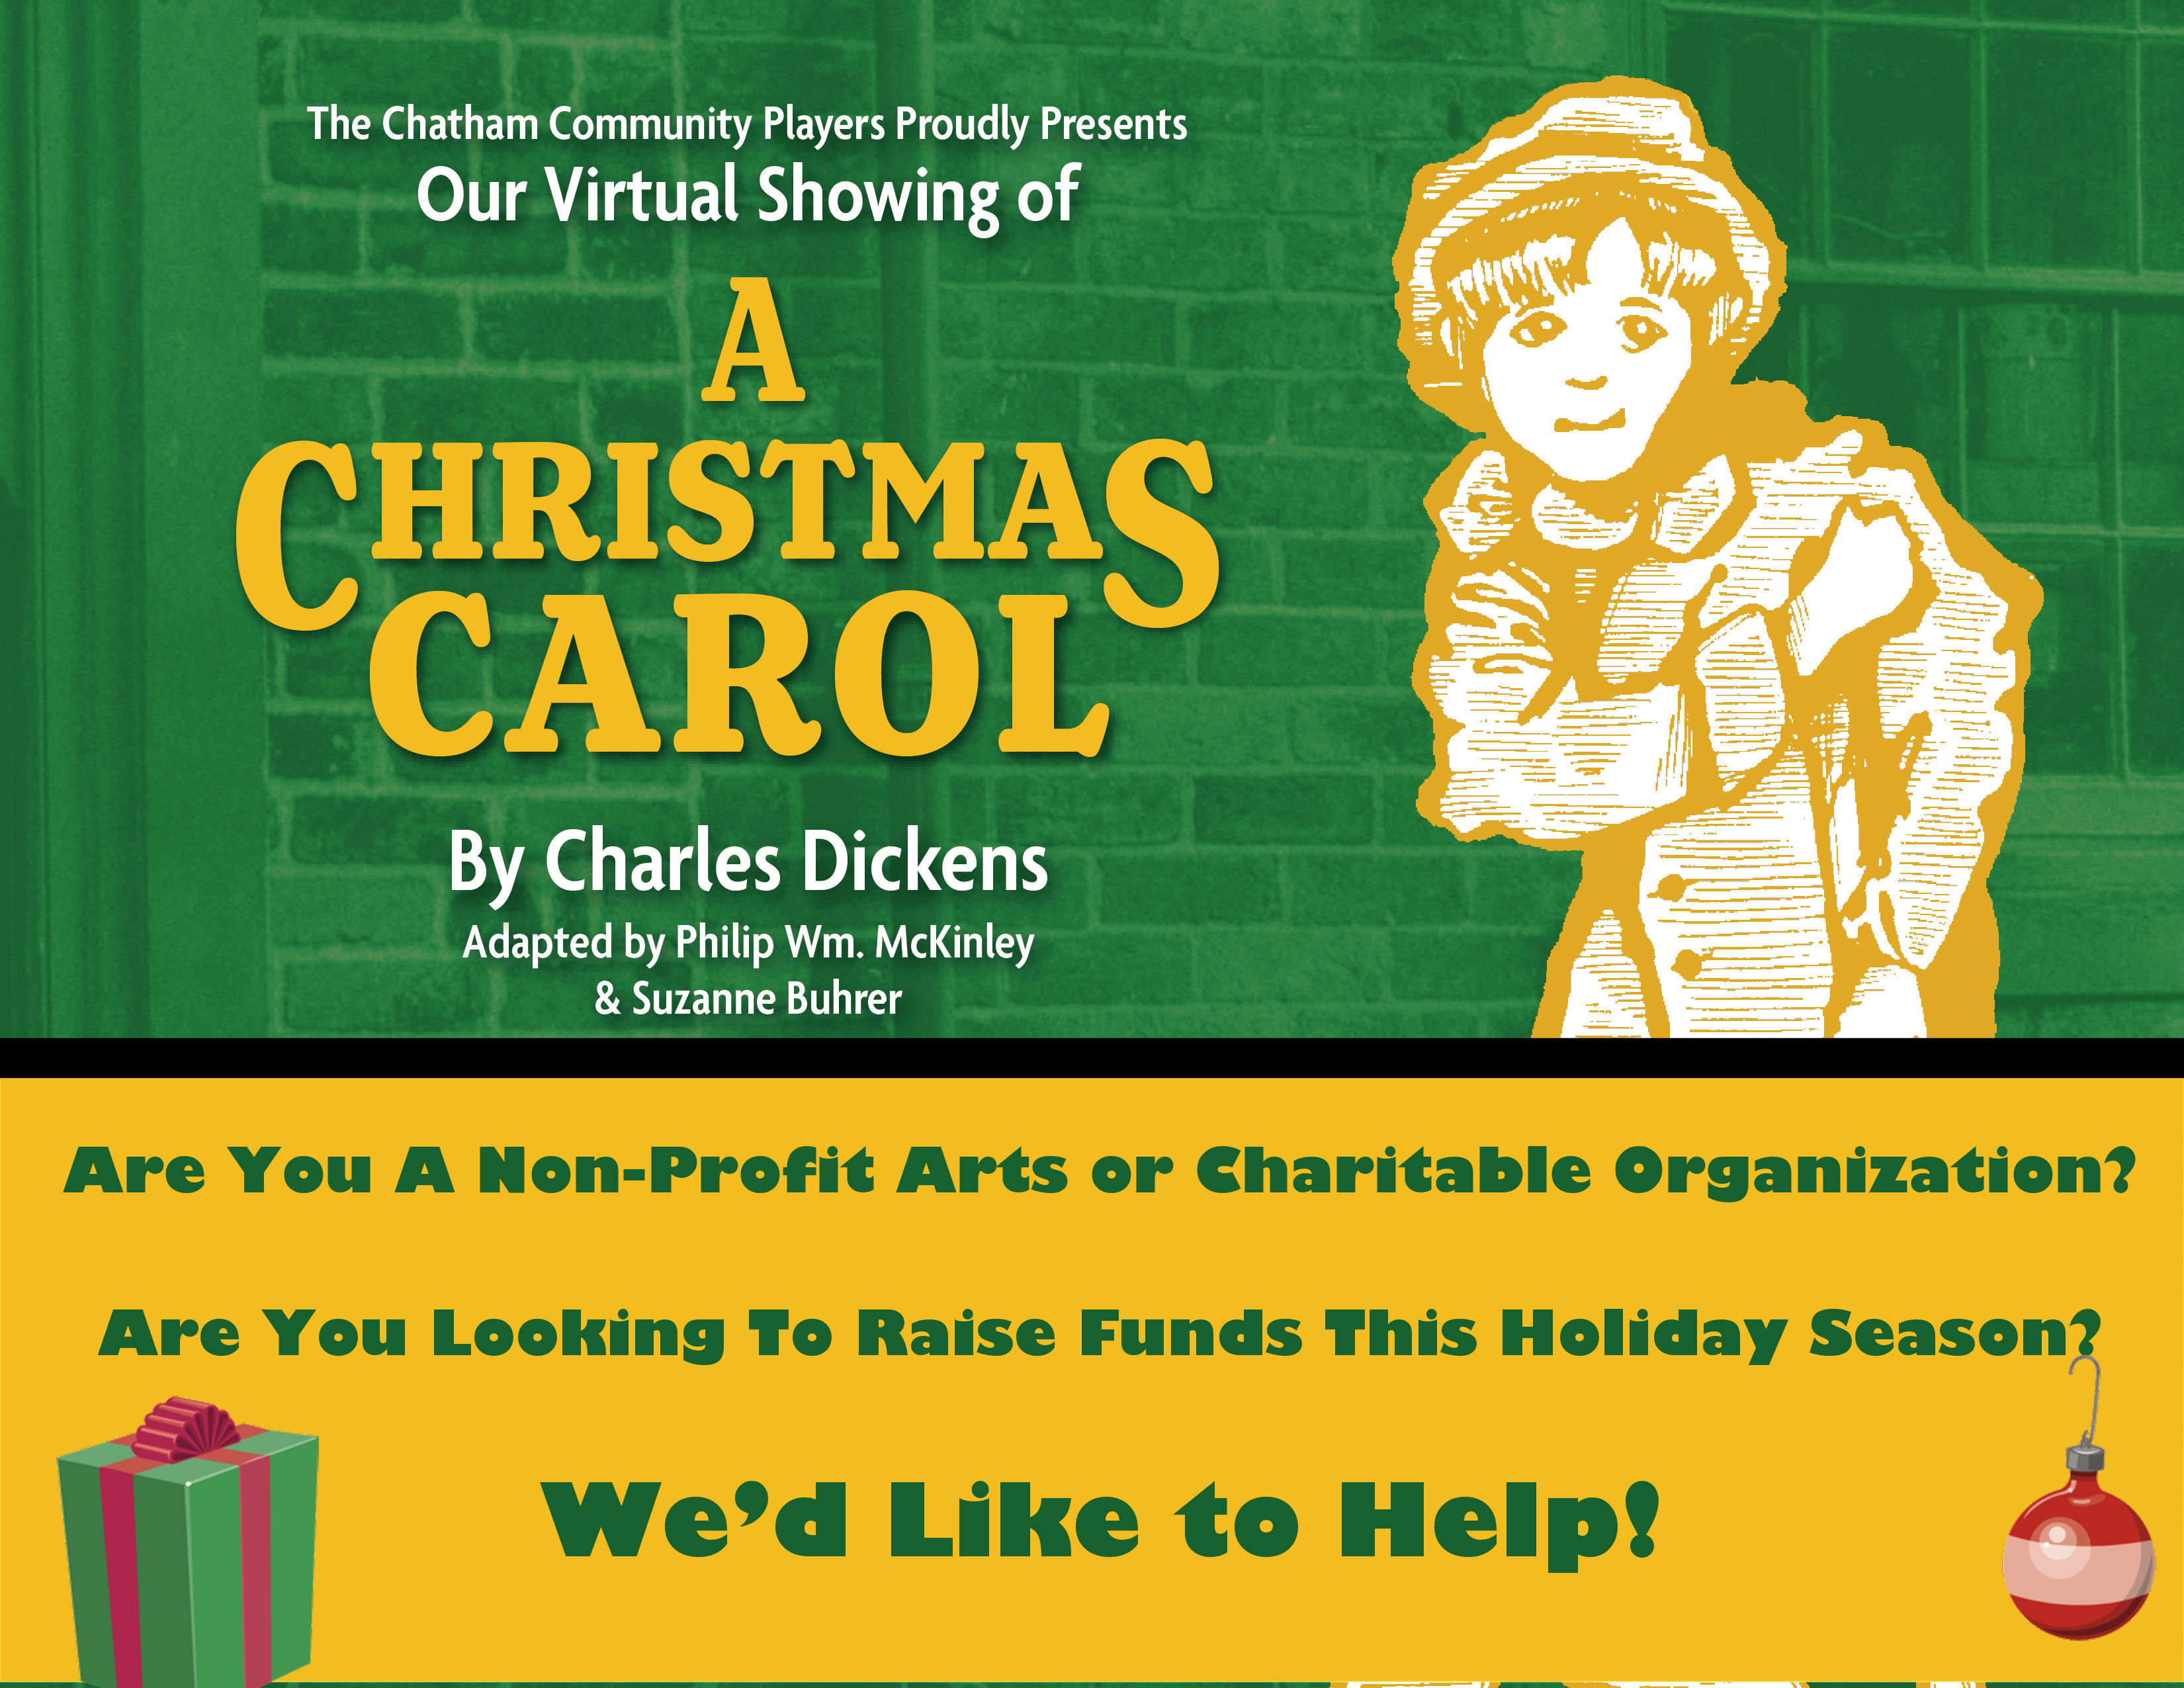 A Christmas Carol - Special Partnership for Non-Profits Arts and Charitable Organizations